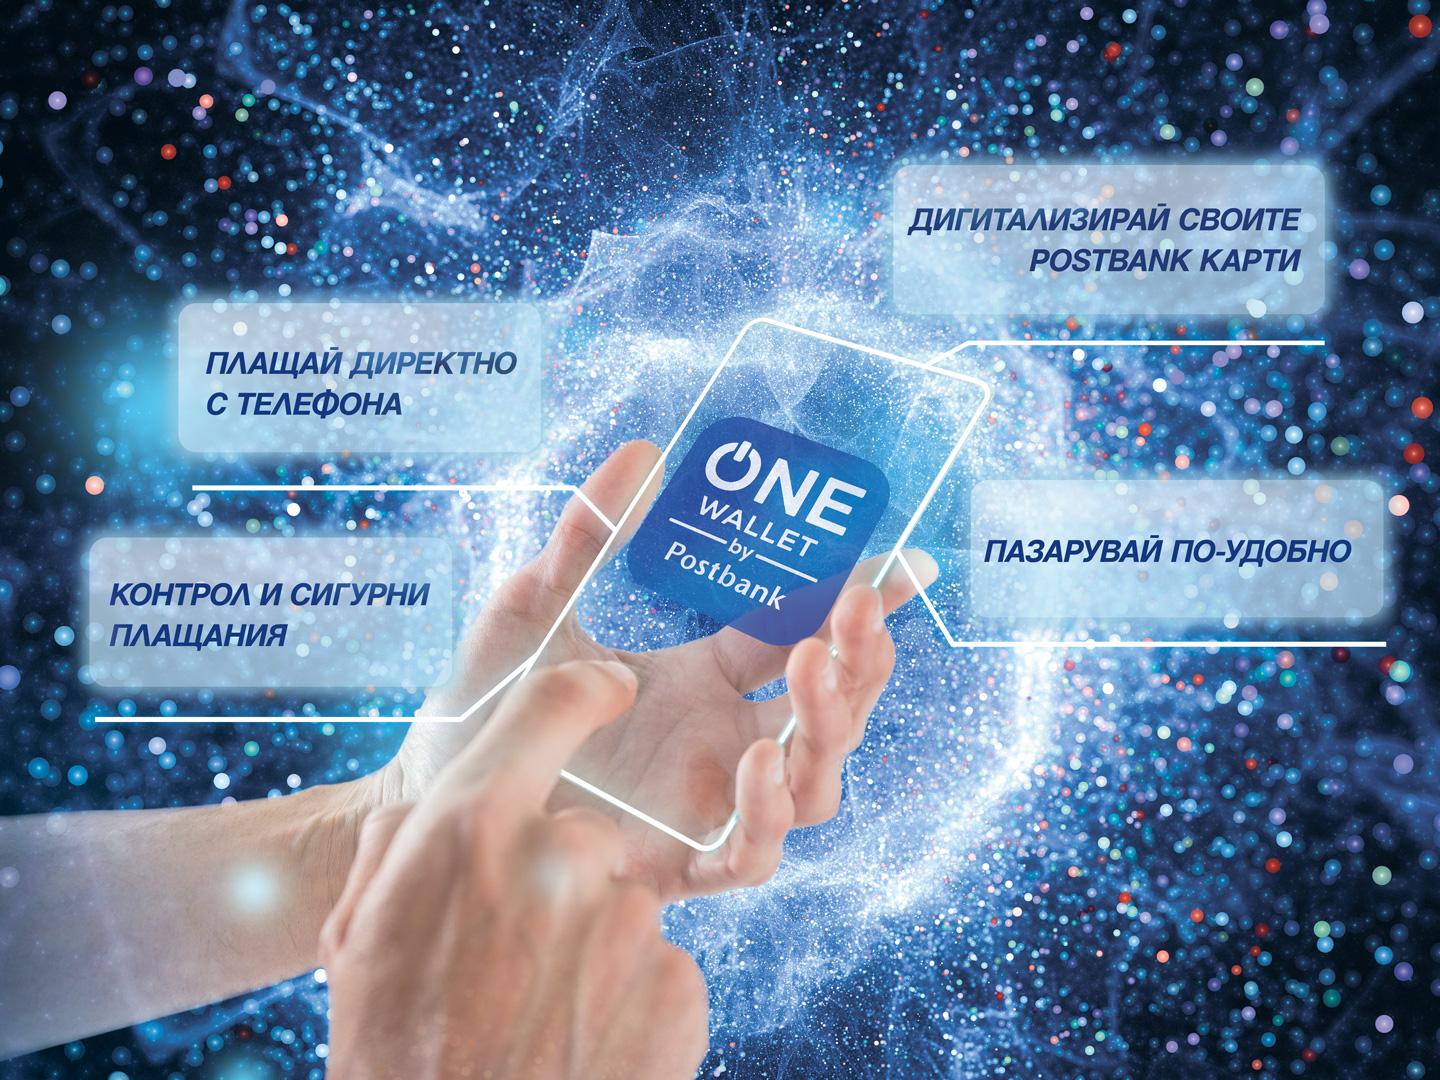 Postbank presents ONE wallet – a last generation mobile wallet